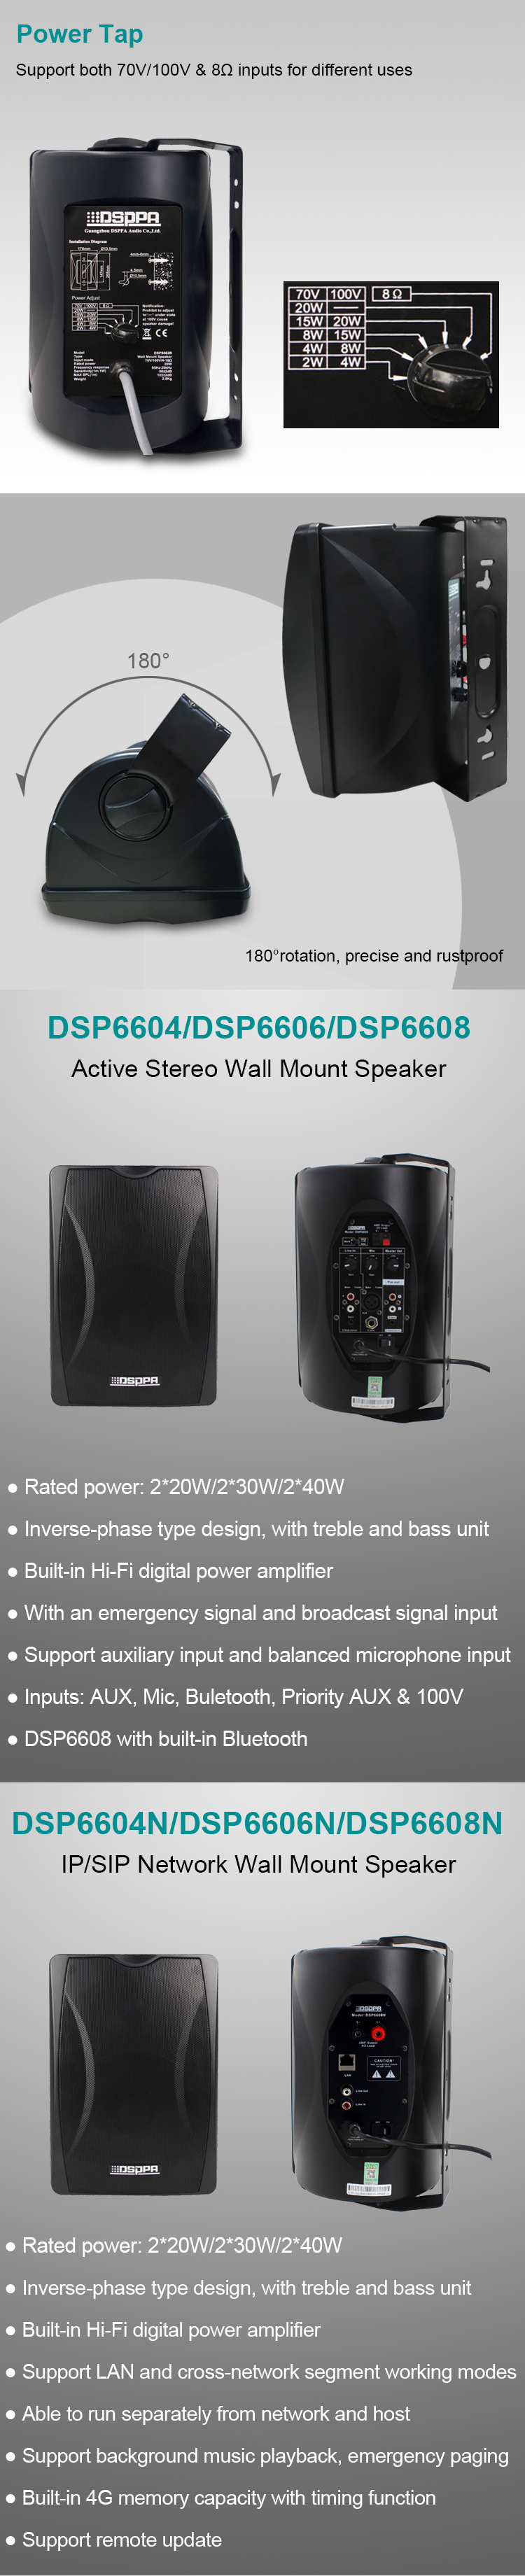 DSP8064B 40W Wall Mount Speaker with Power Tap